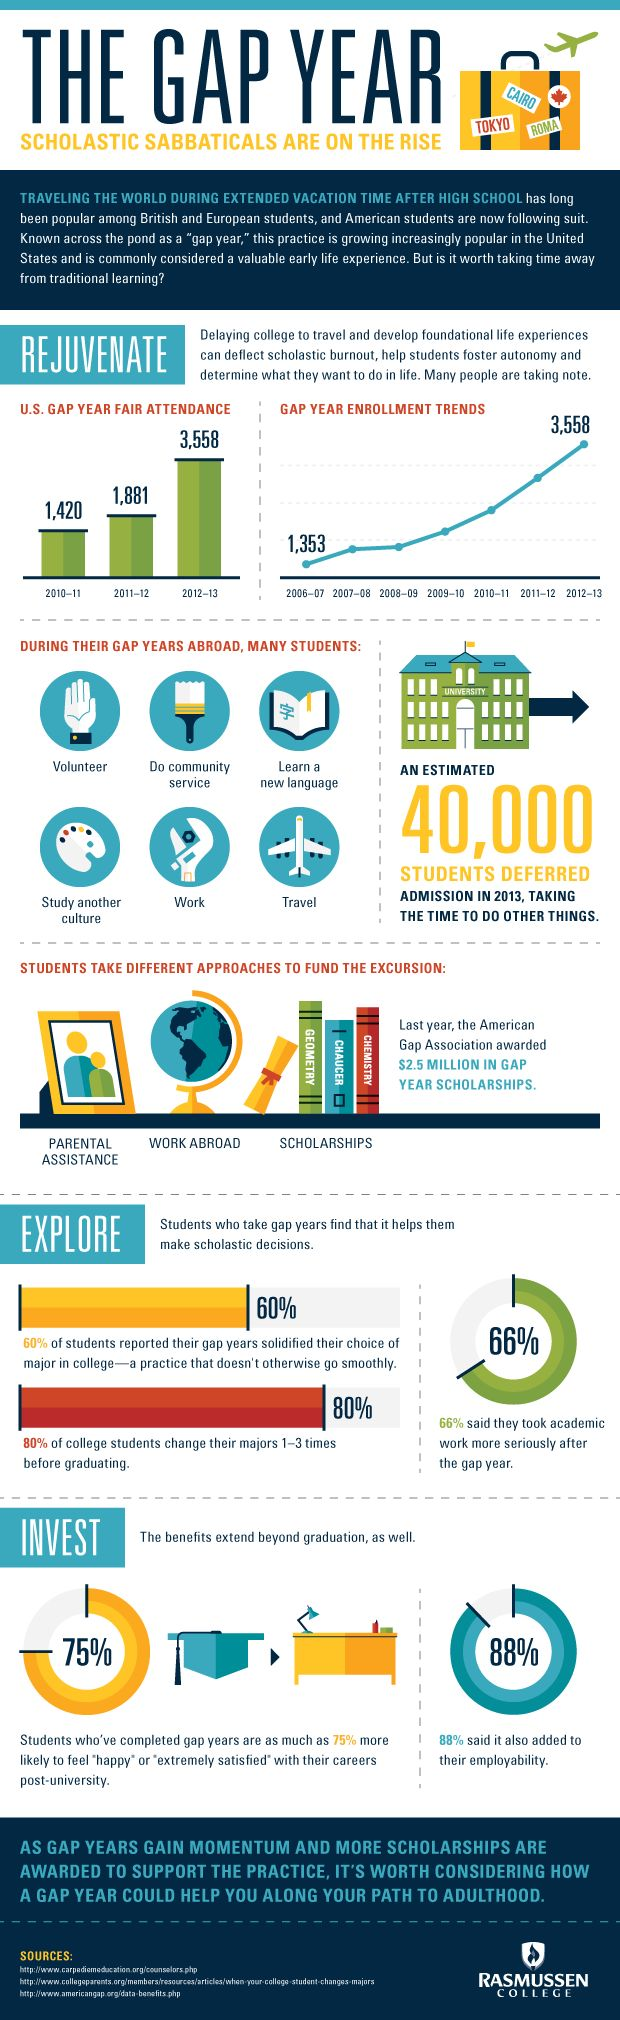 The Gap Year Scholastic Sabbaticals Are On The Rise Infographic Infographic Gapyear College Gap Year Gap Year Travel Gap Year Plan